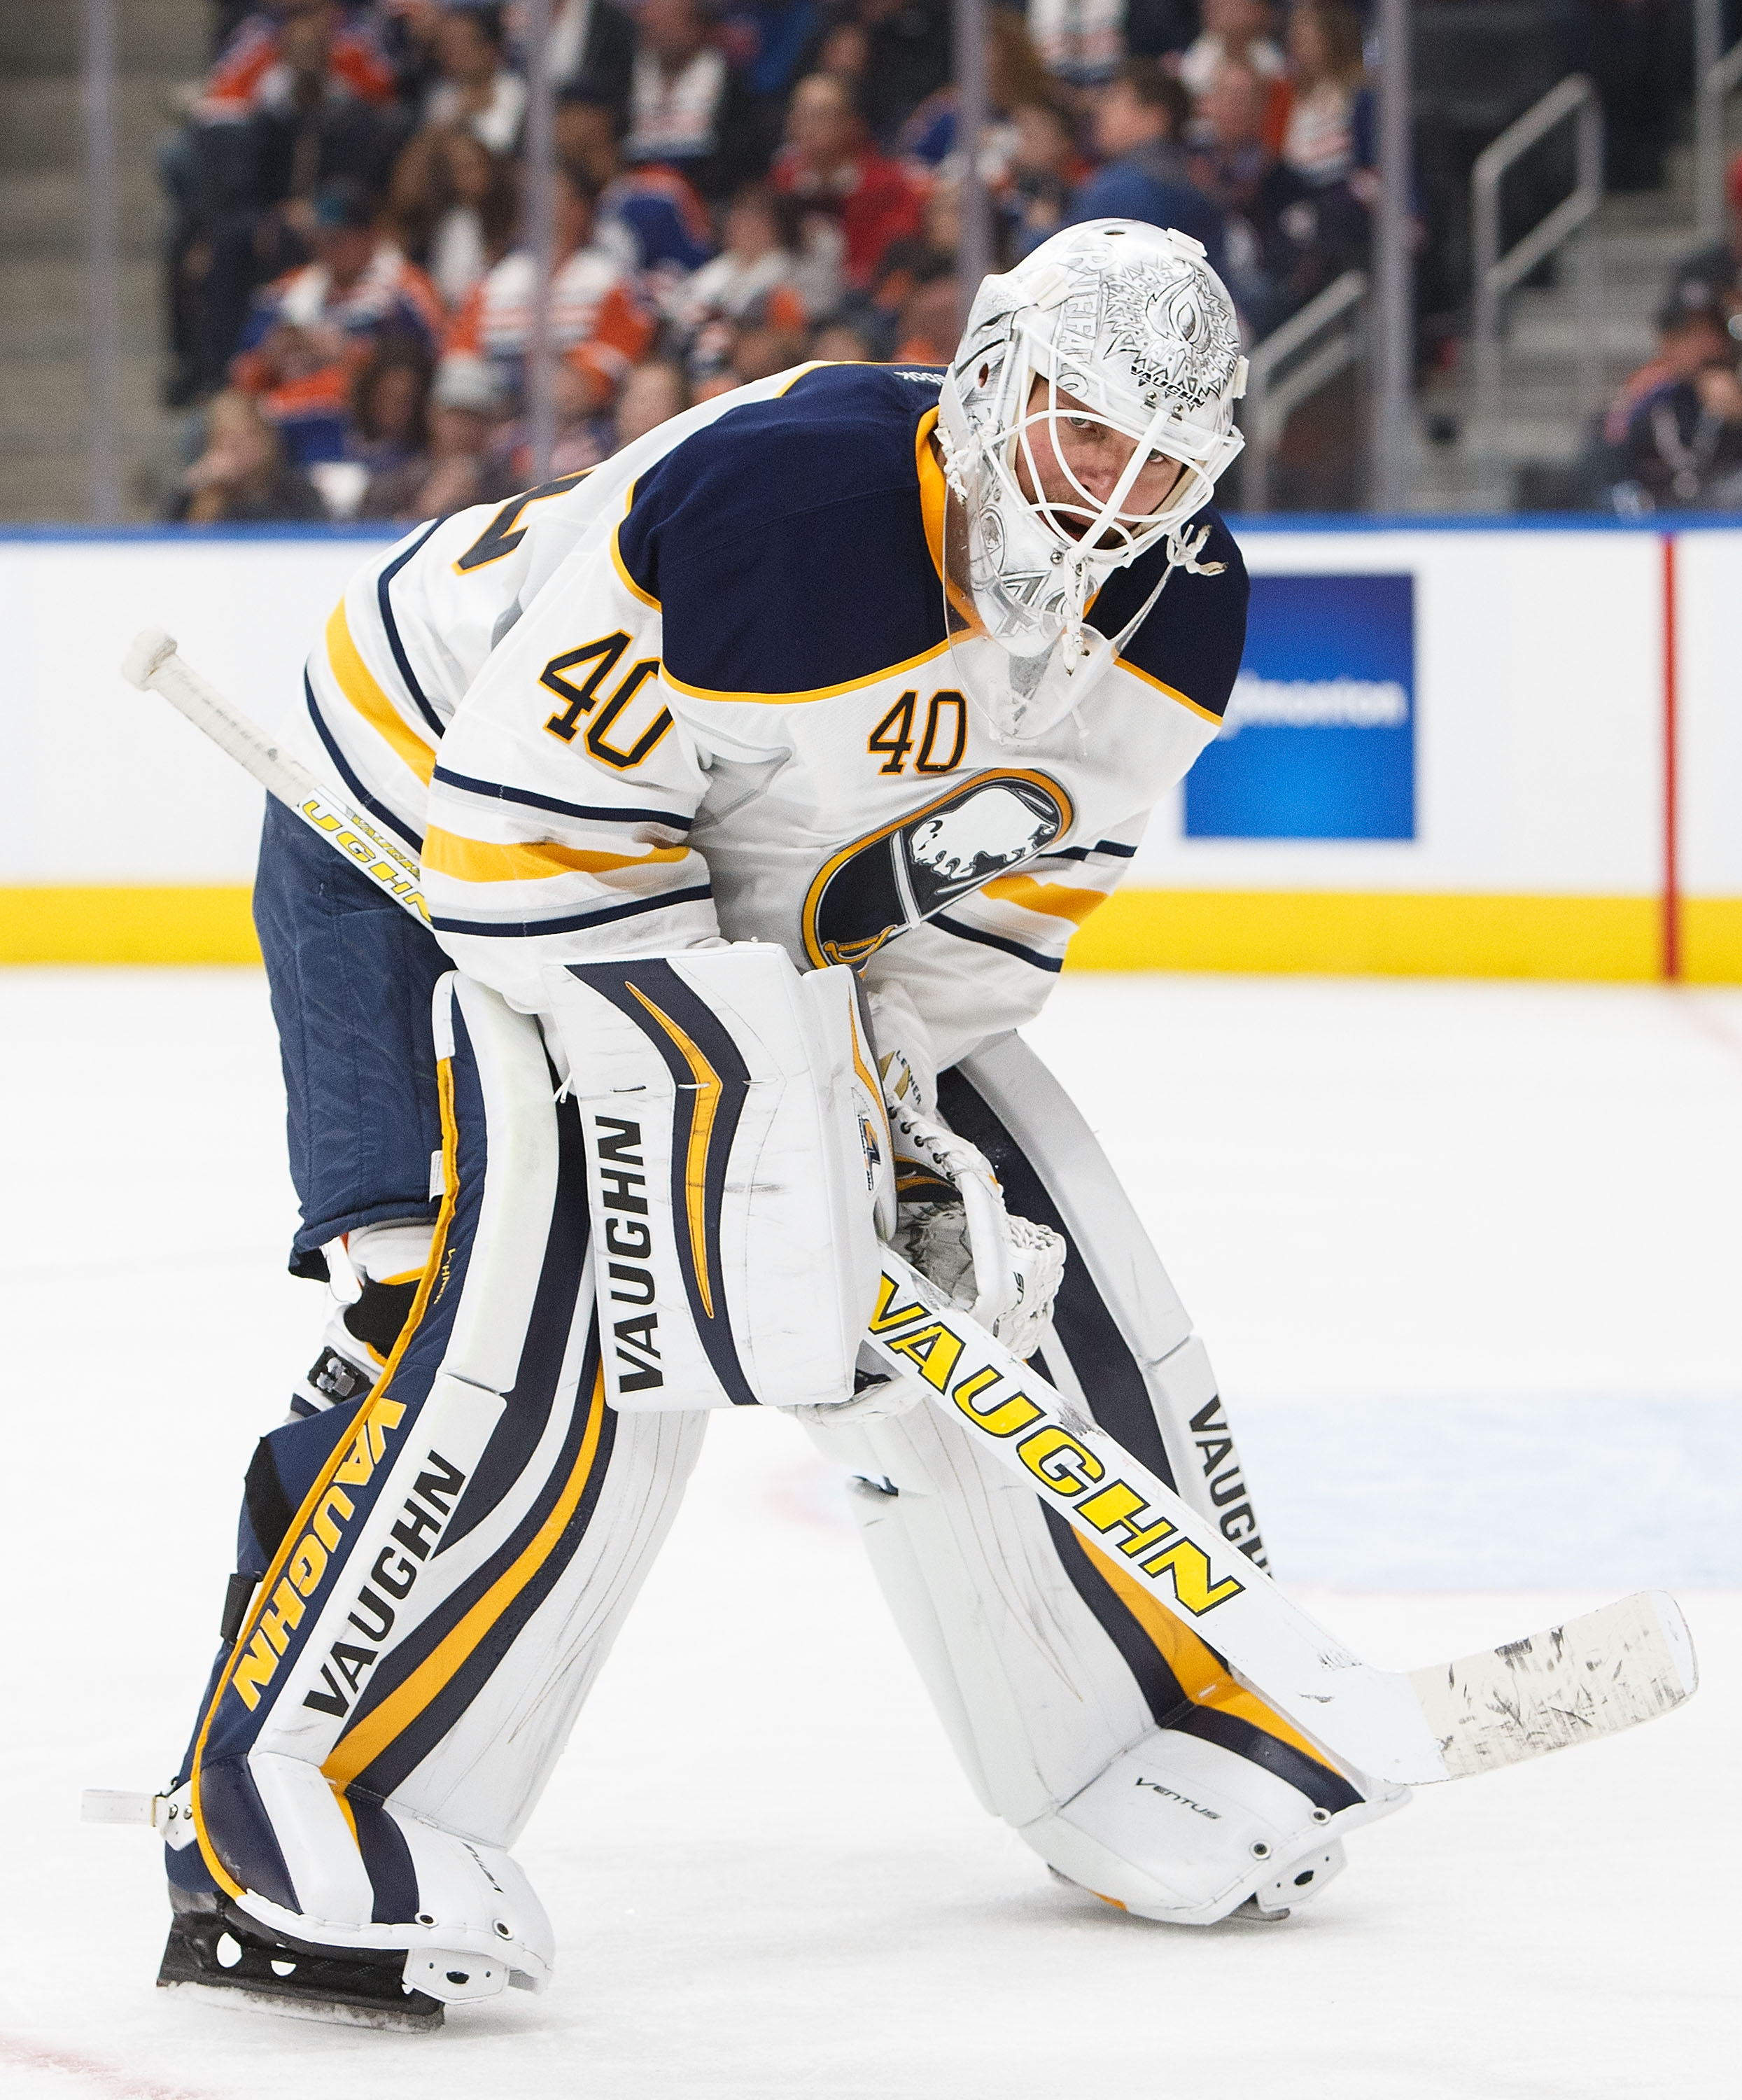 Robin Lehner fell to 7-14 in shootouts, including 0-3 this season. (Getty Images)